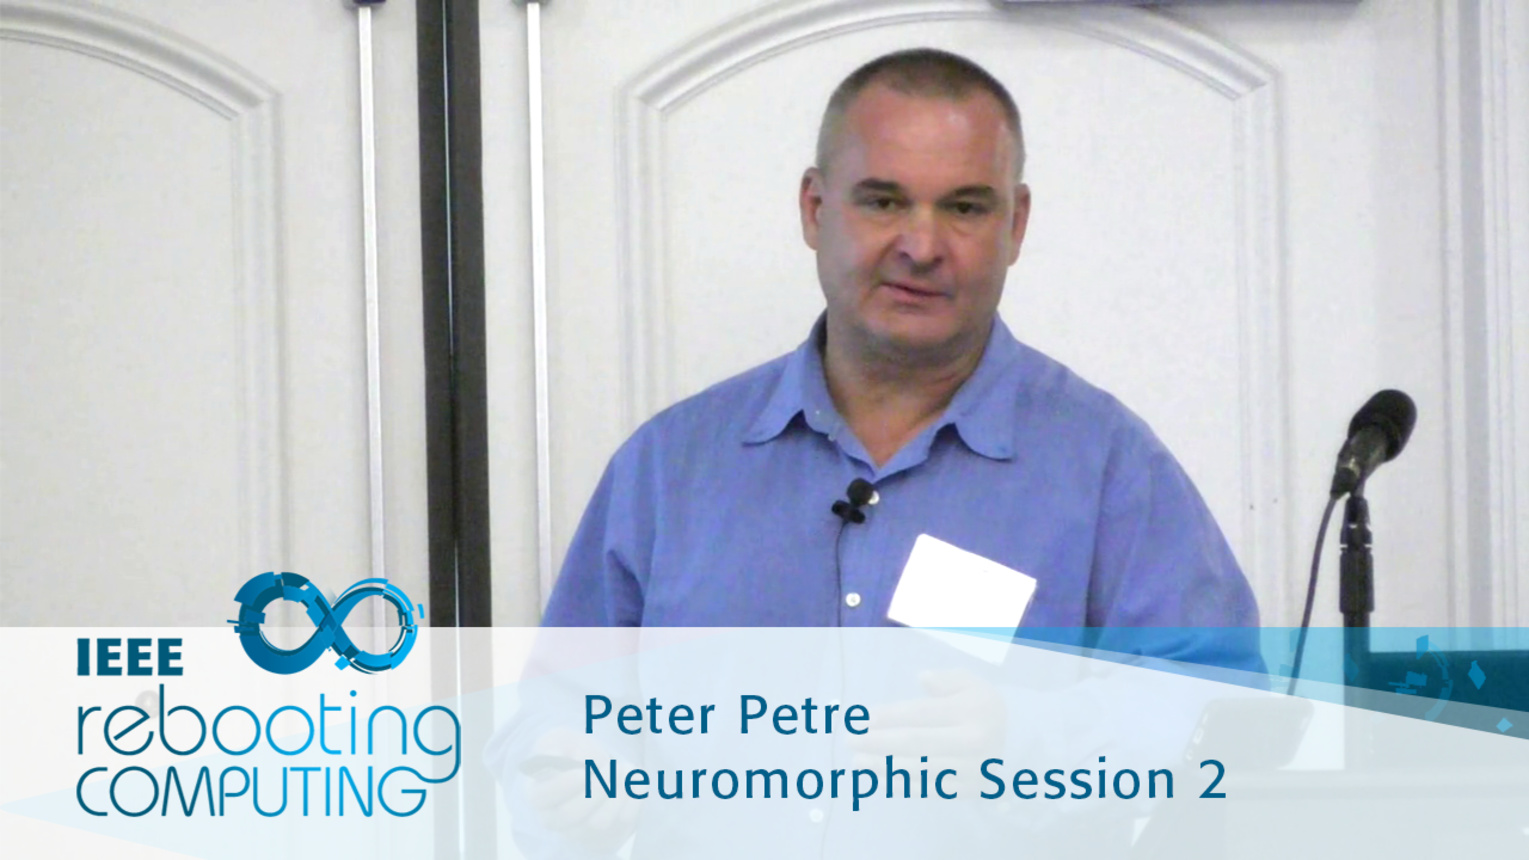 Neuromorphic Mixed-Signal Circuitry for Asynchronous Pulse Processing Neuromorphic Mixed-Signal Circuitry for Asynchronous Pulse Processing - Peter Petre: 2016 International Conference on Rebooting Computing